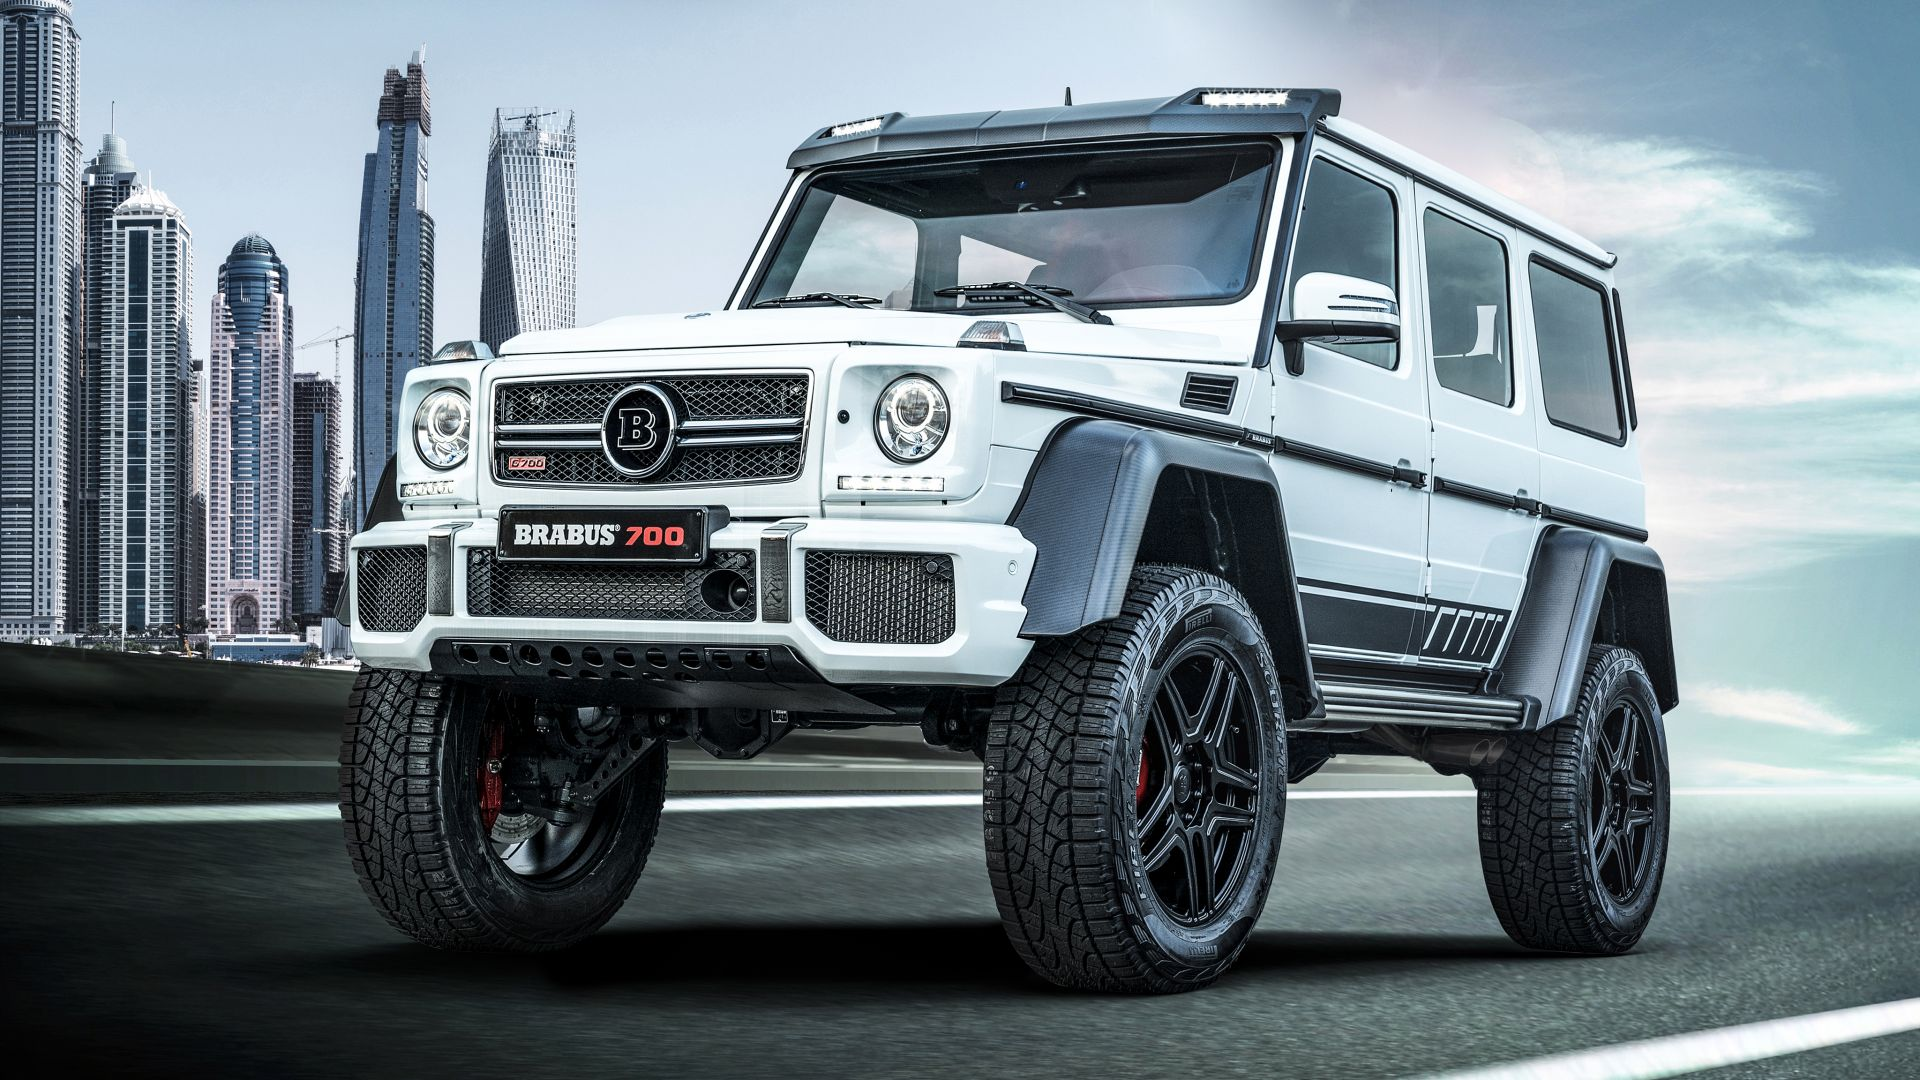 Brabus 700 Final Edition, SUV, 2019 Cars, 4K (horizontal)